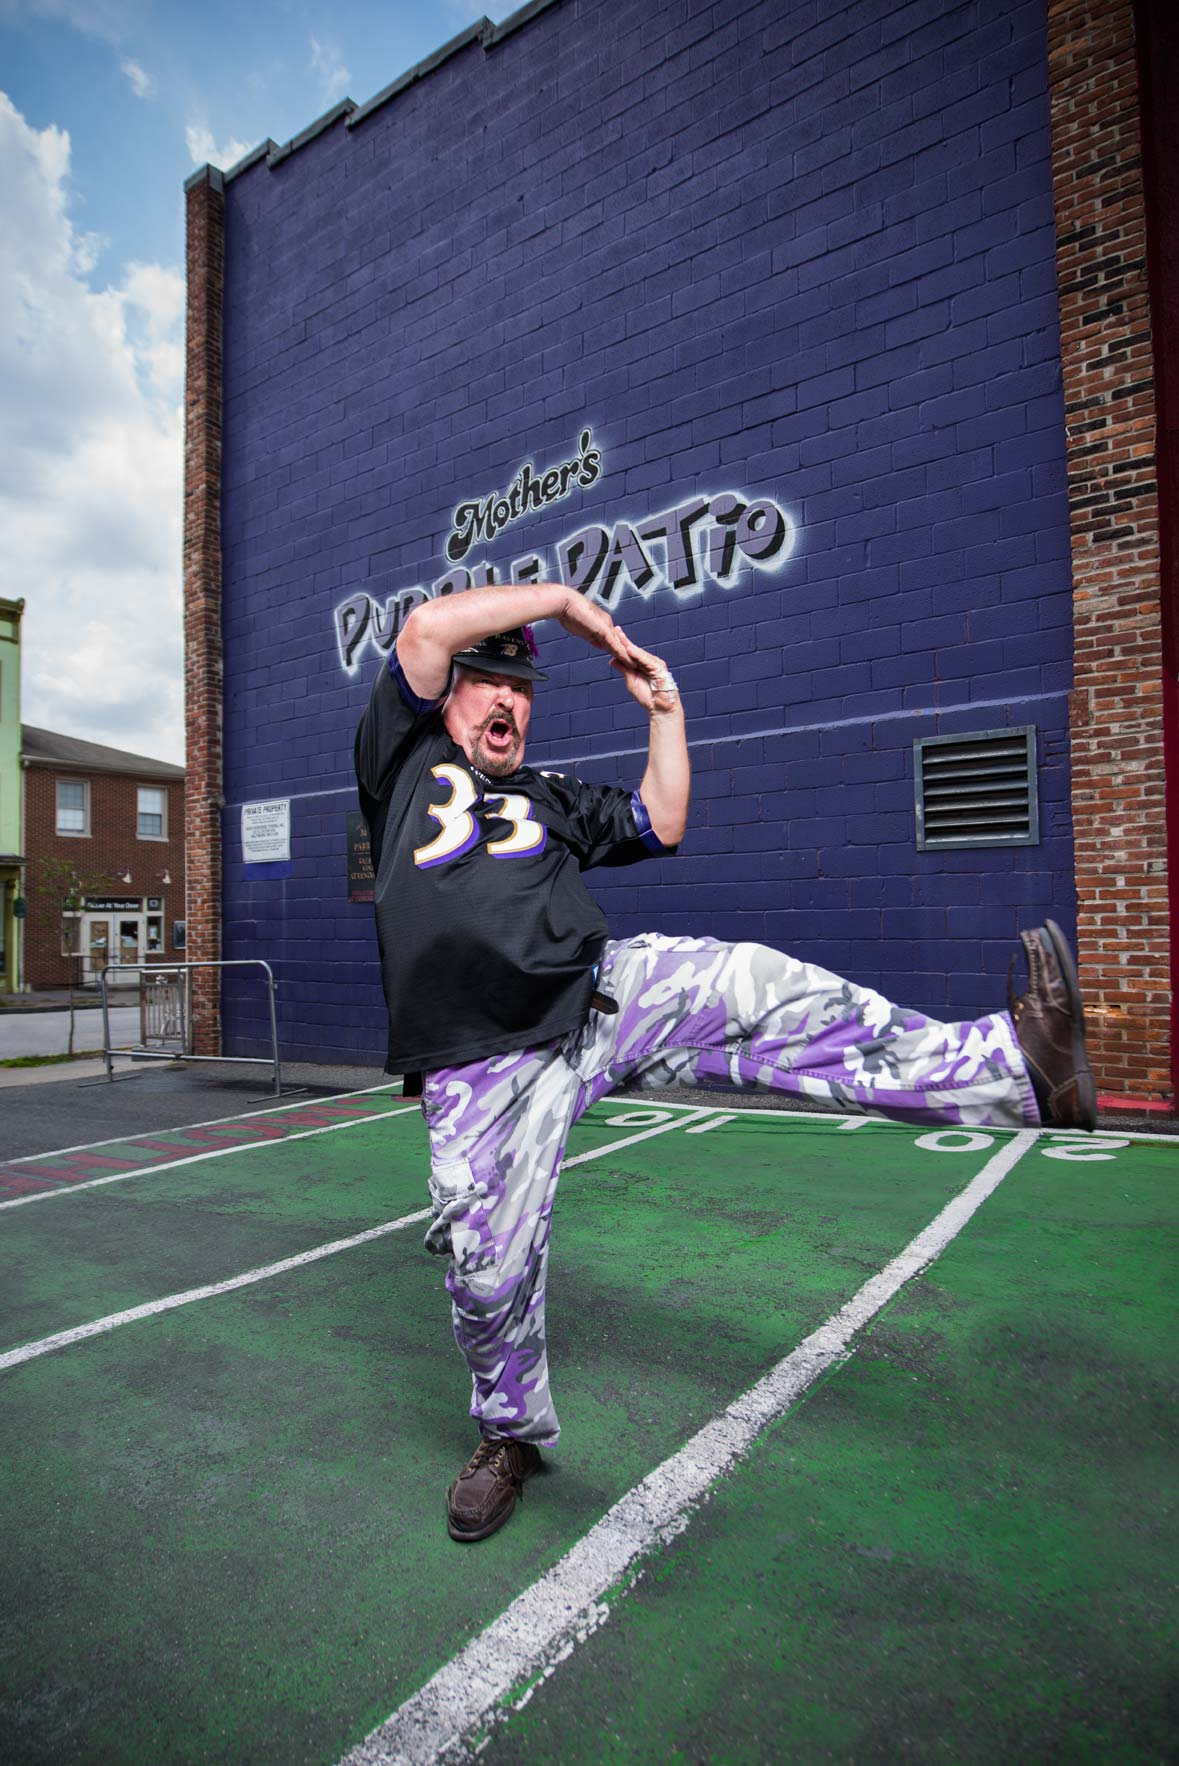 Real Fan Dan, Dan Granofsky, photographed for Baltimore Magazine